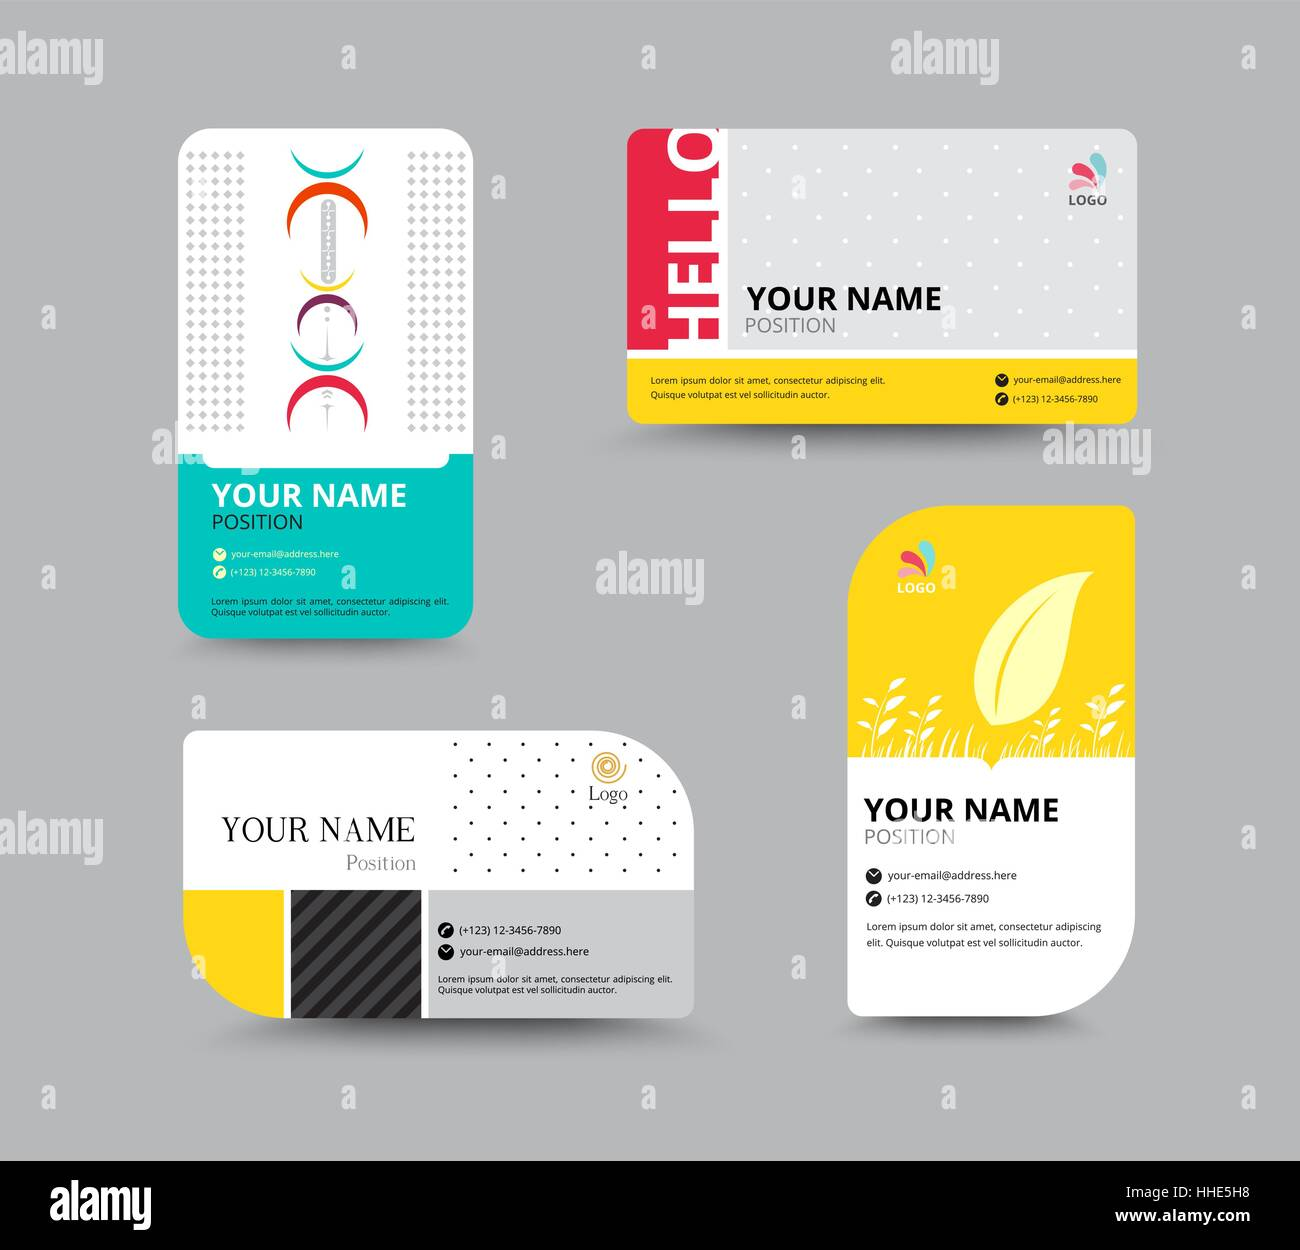 Business Card Sample   Business Card Template Name Card Design For Business Include